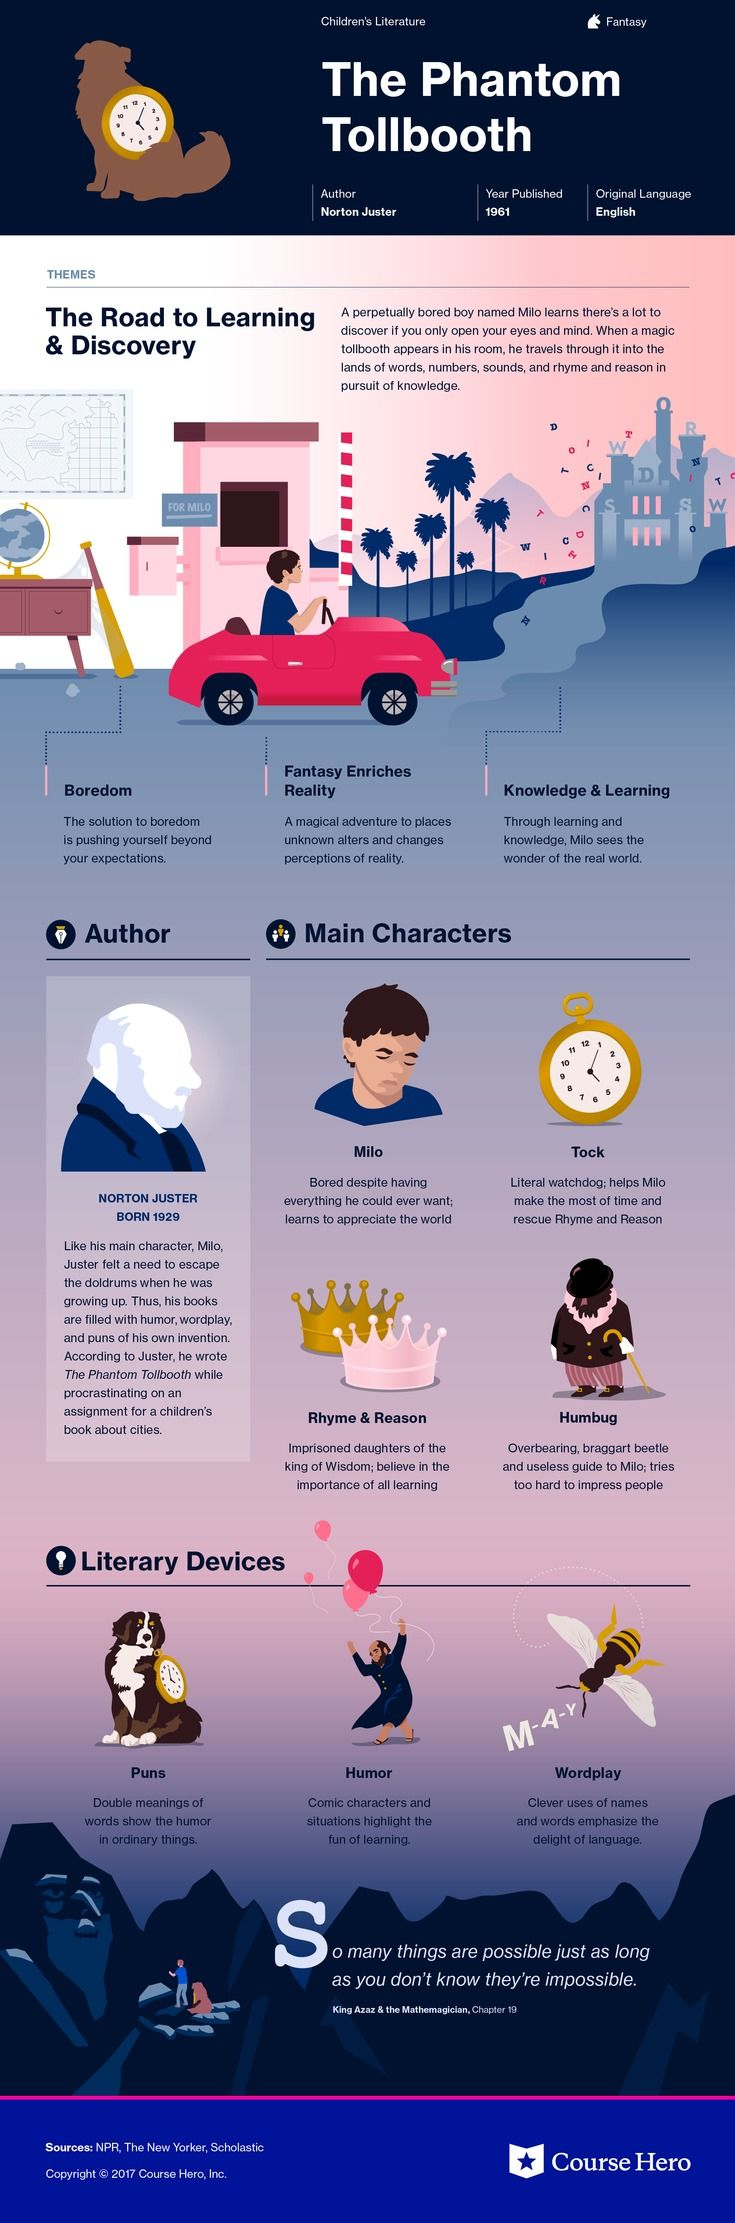 This @CourseHero infographic on The Phantom Tollbooth is both visually stunning and informative!